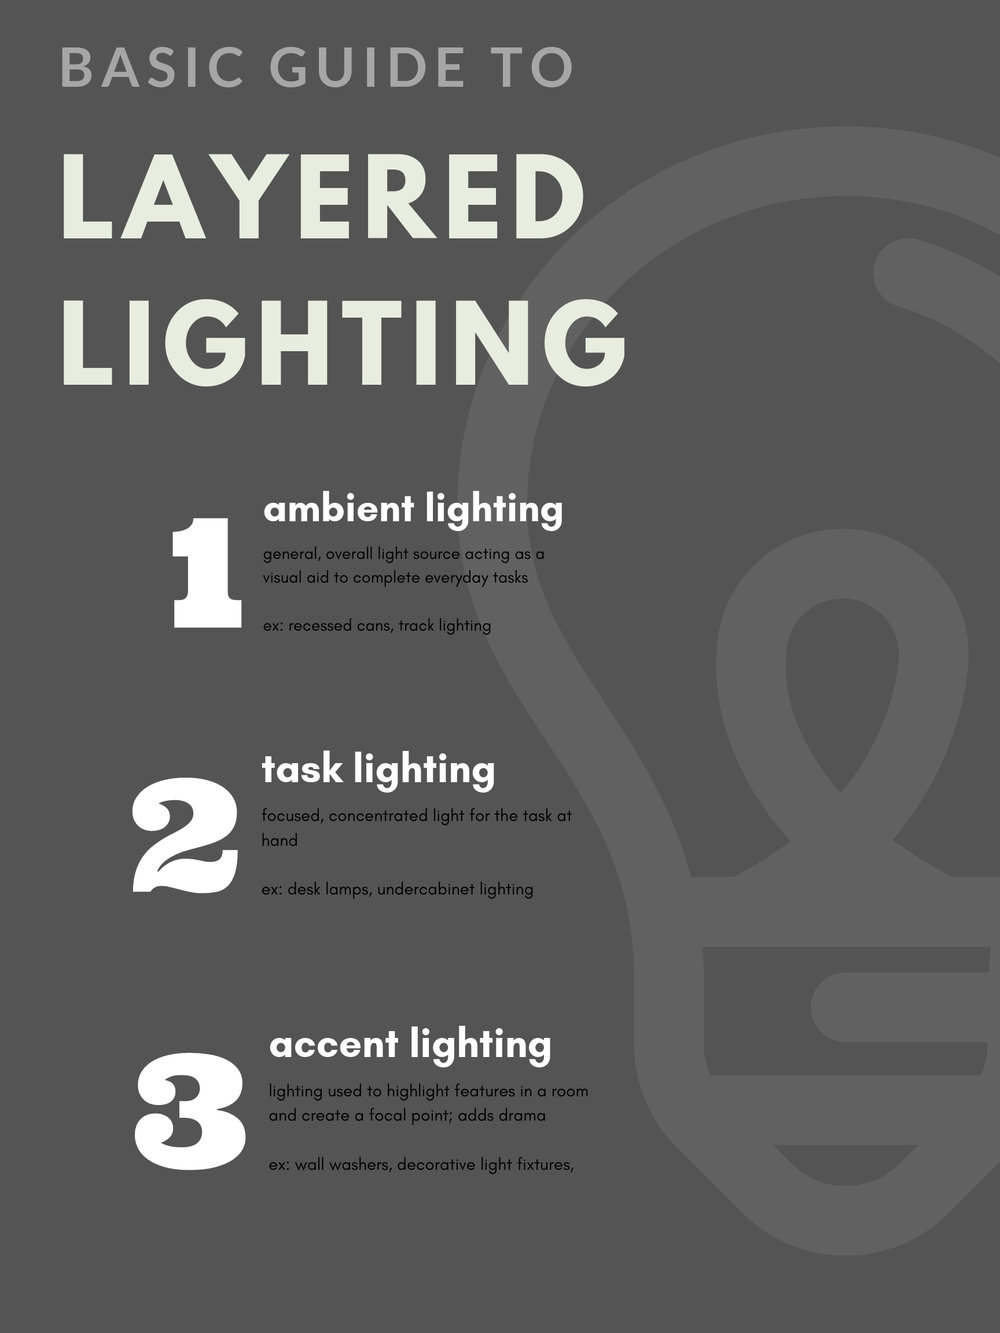 layered lighting lexington ky interior design renovation lighting design interior designers